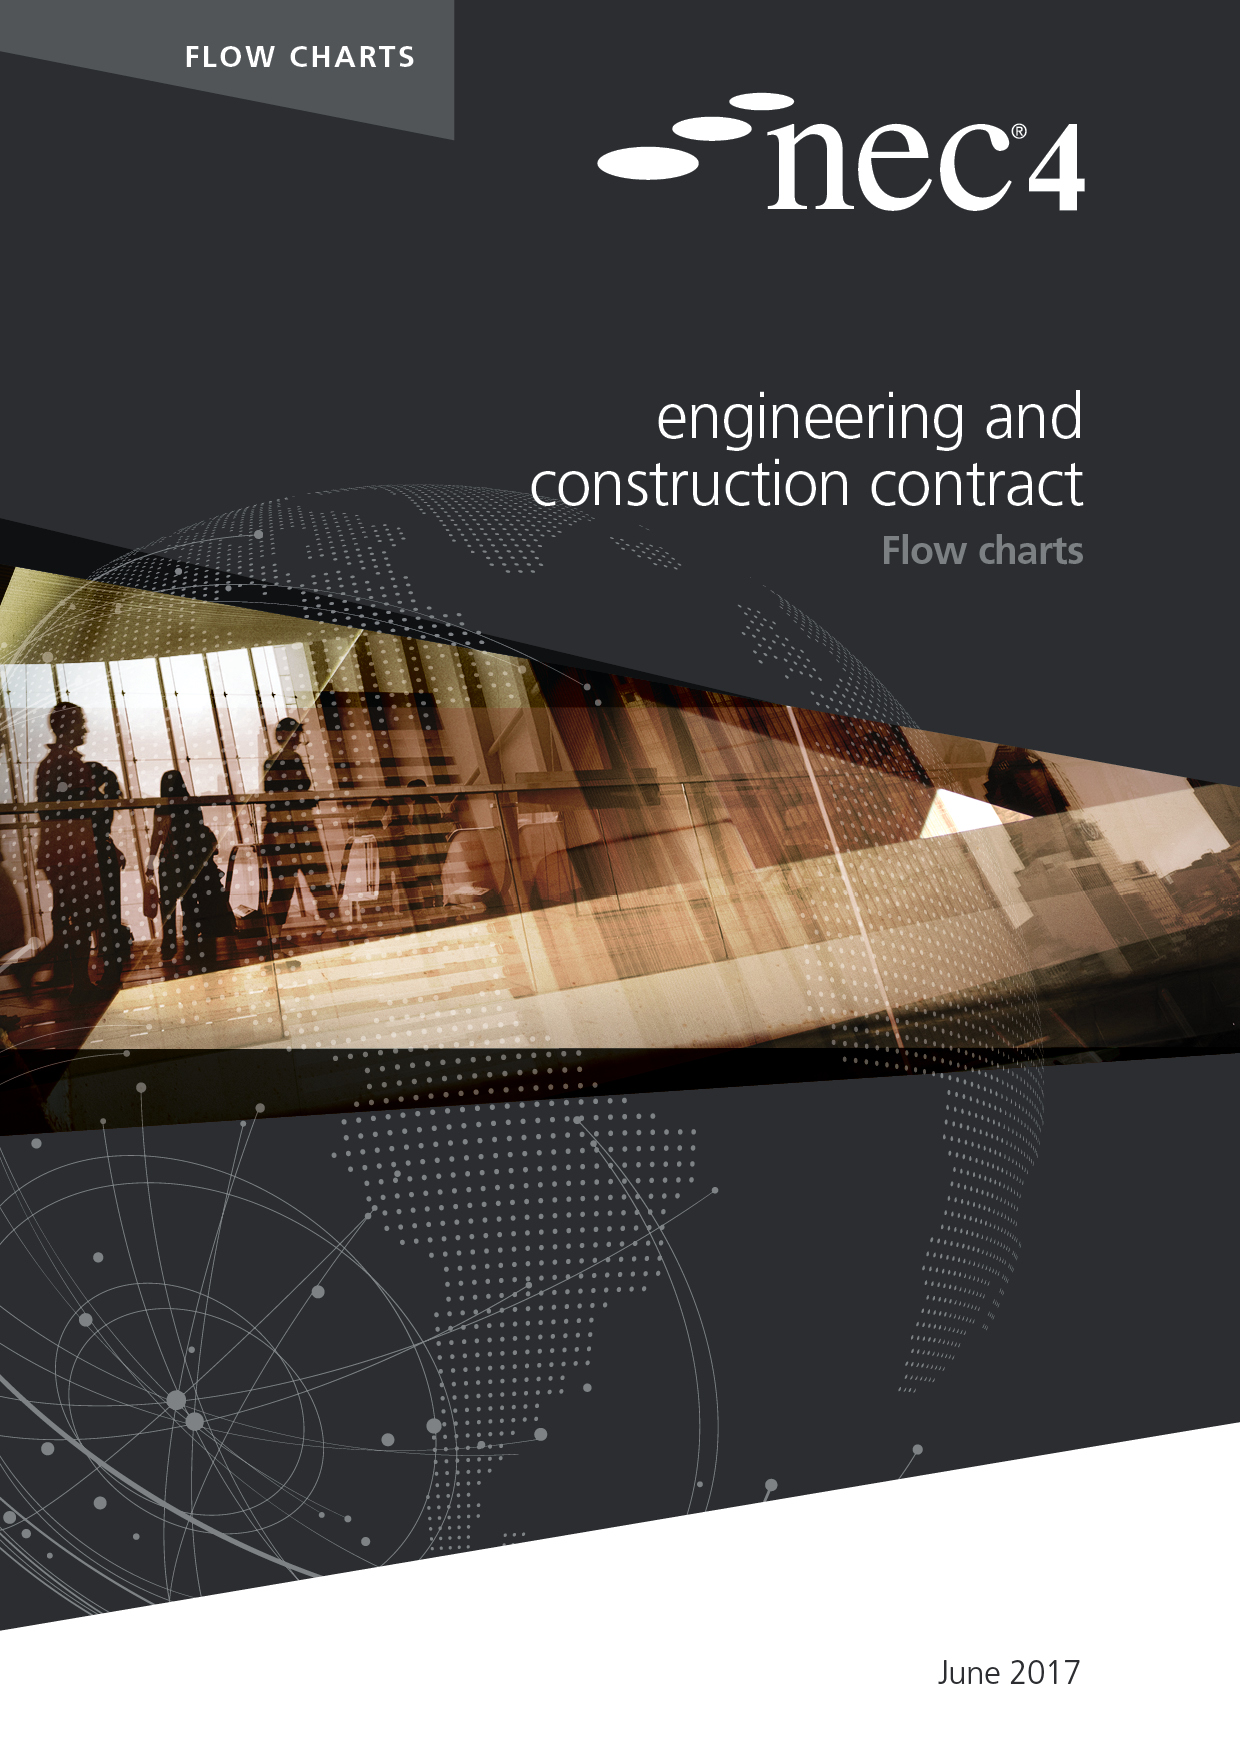 NEC4: Engineering and Construction Contract Flow Charts